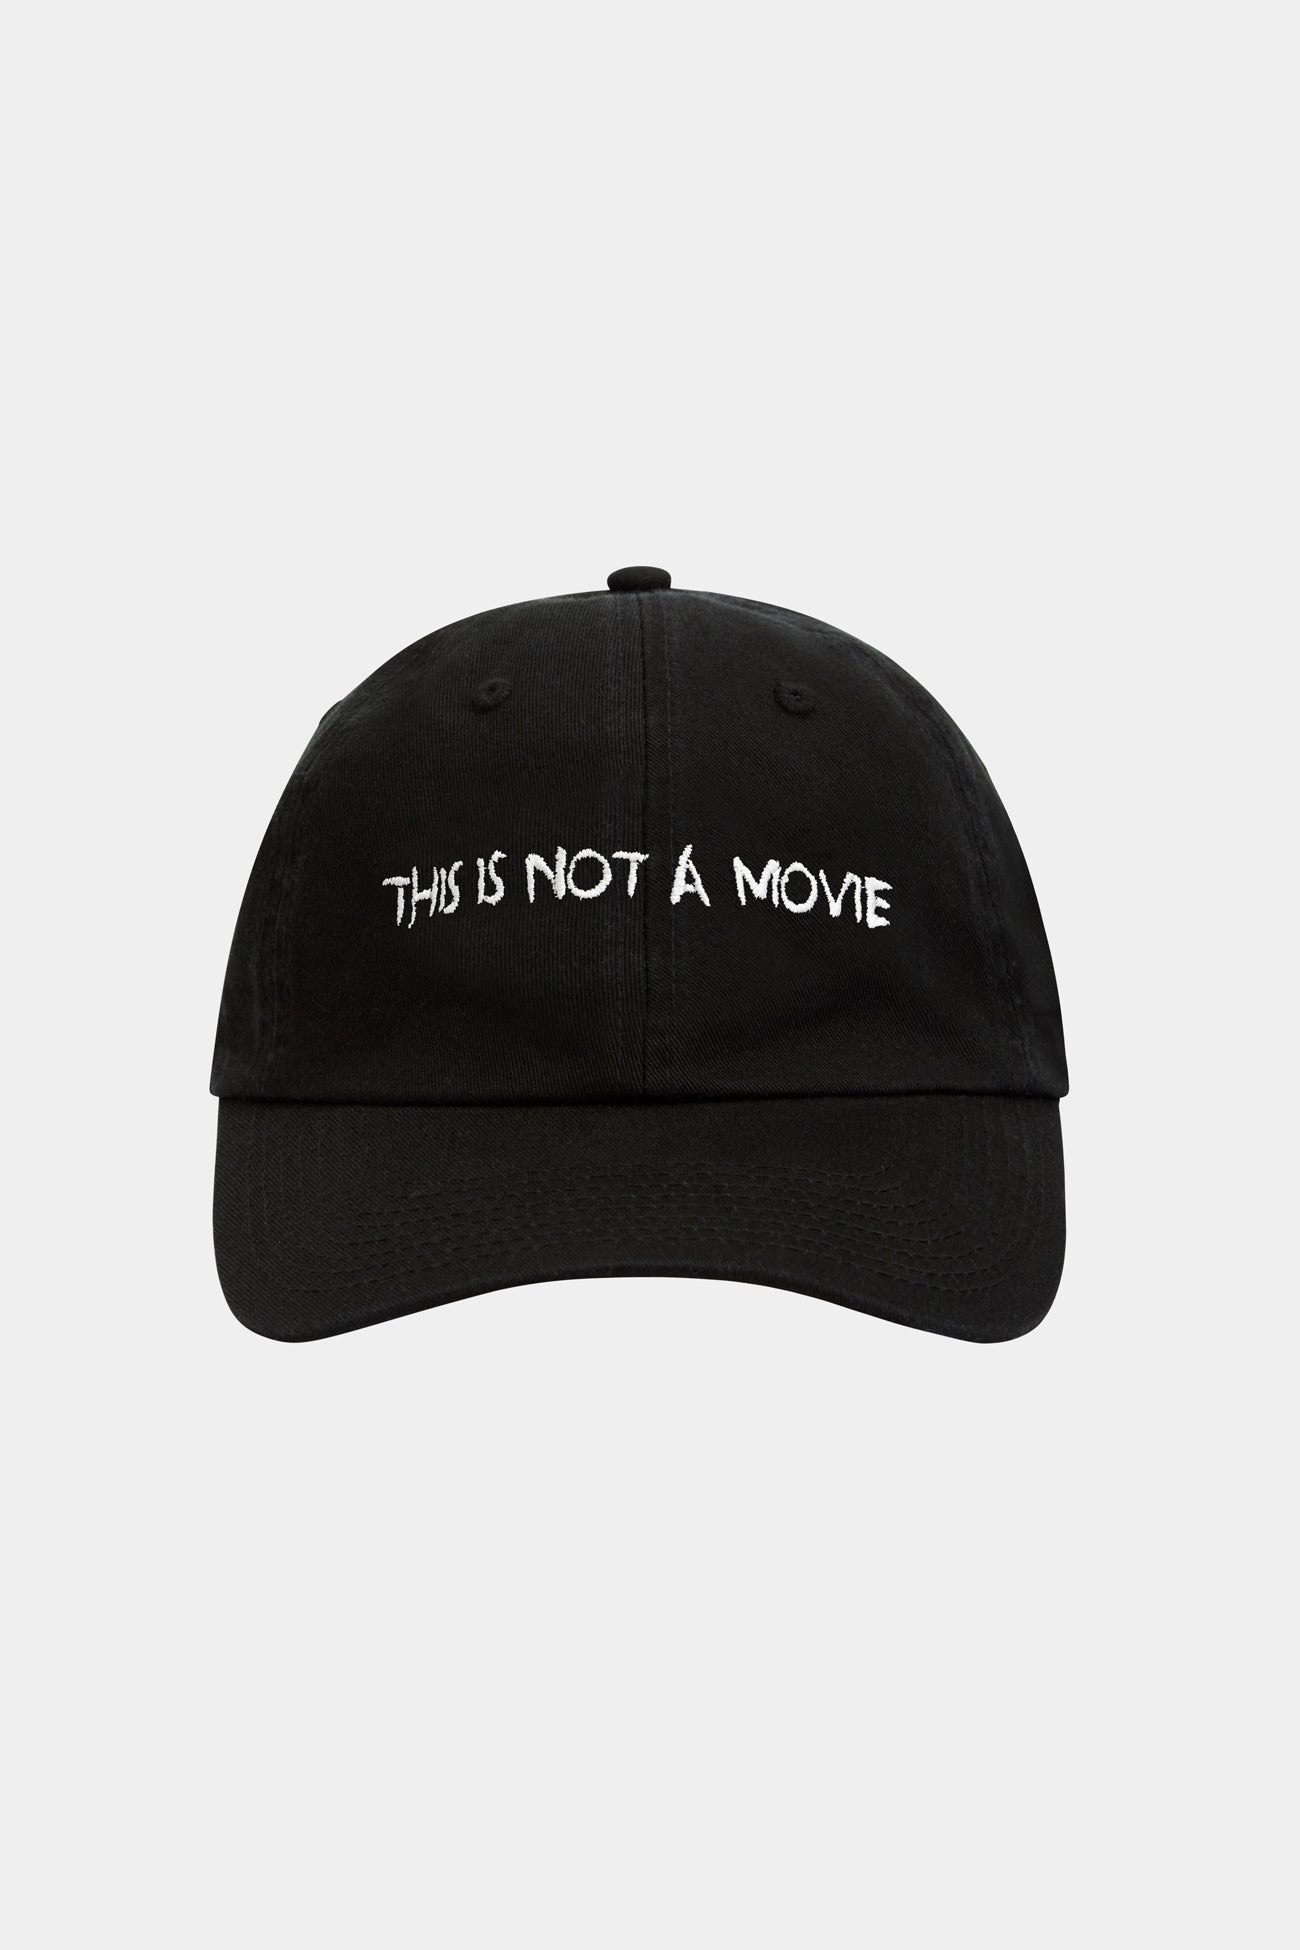 THIS IS NOT A MOVIE CAP